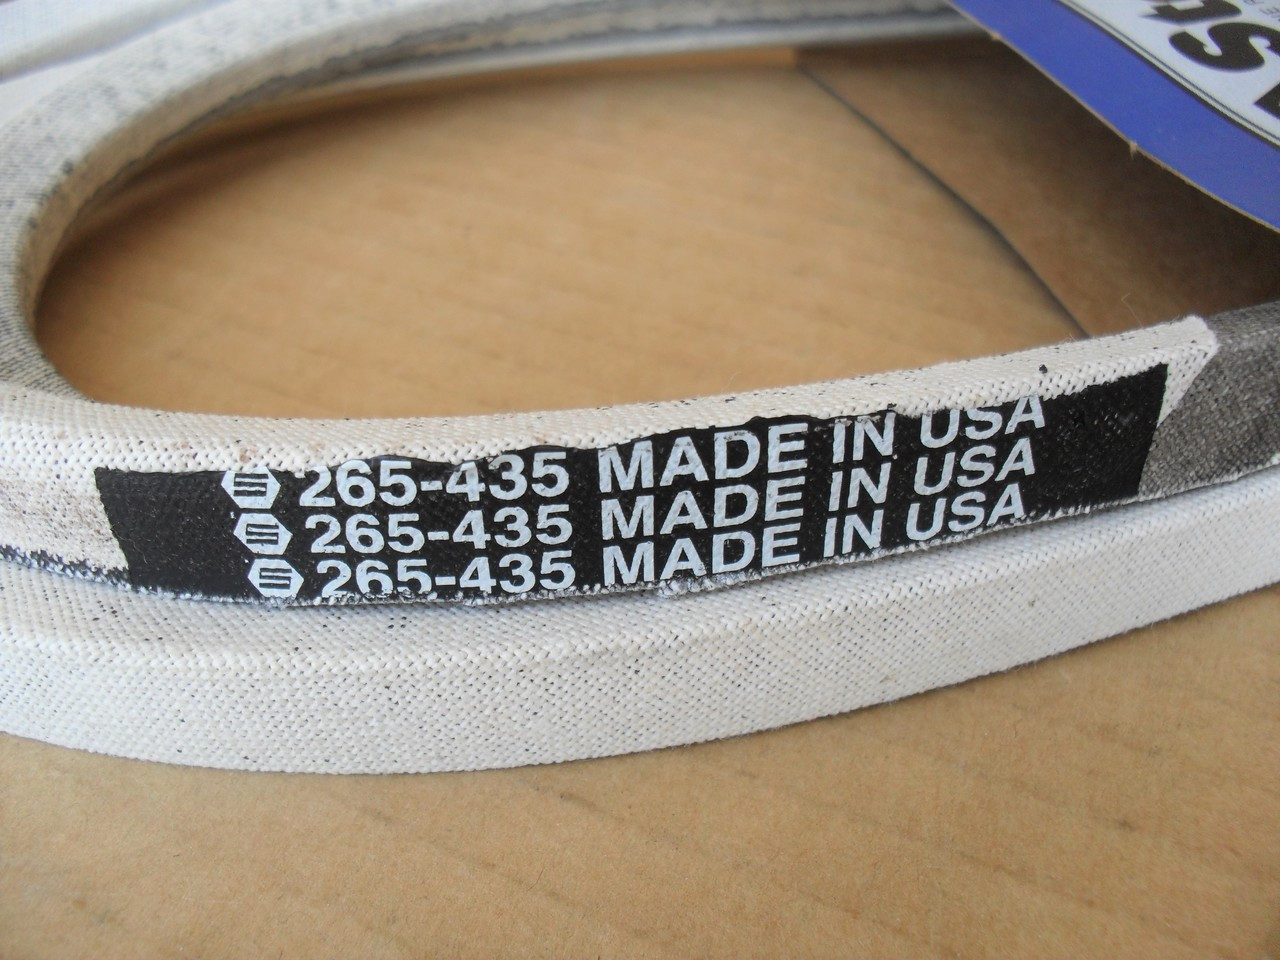 """Deck Belt for Craftsman T8000 42"""" Cut, 754-05021, 954-05021, Made In USA"""